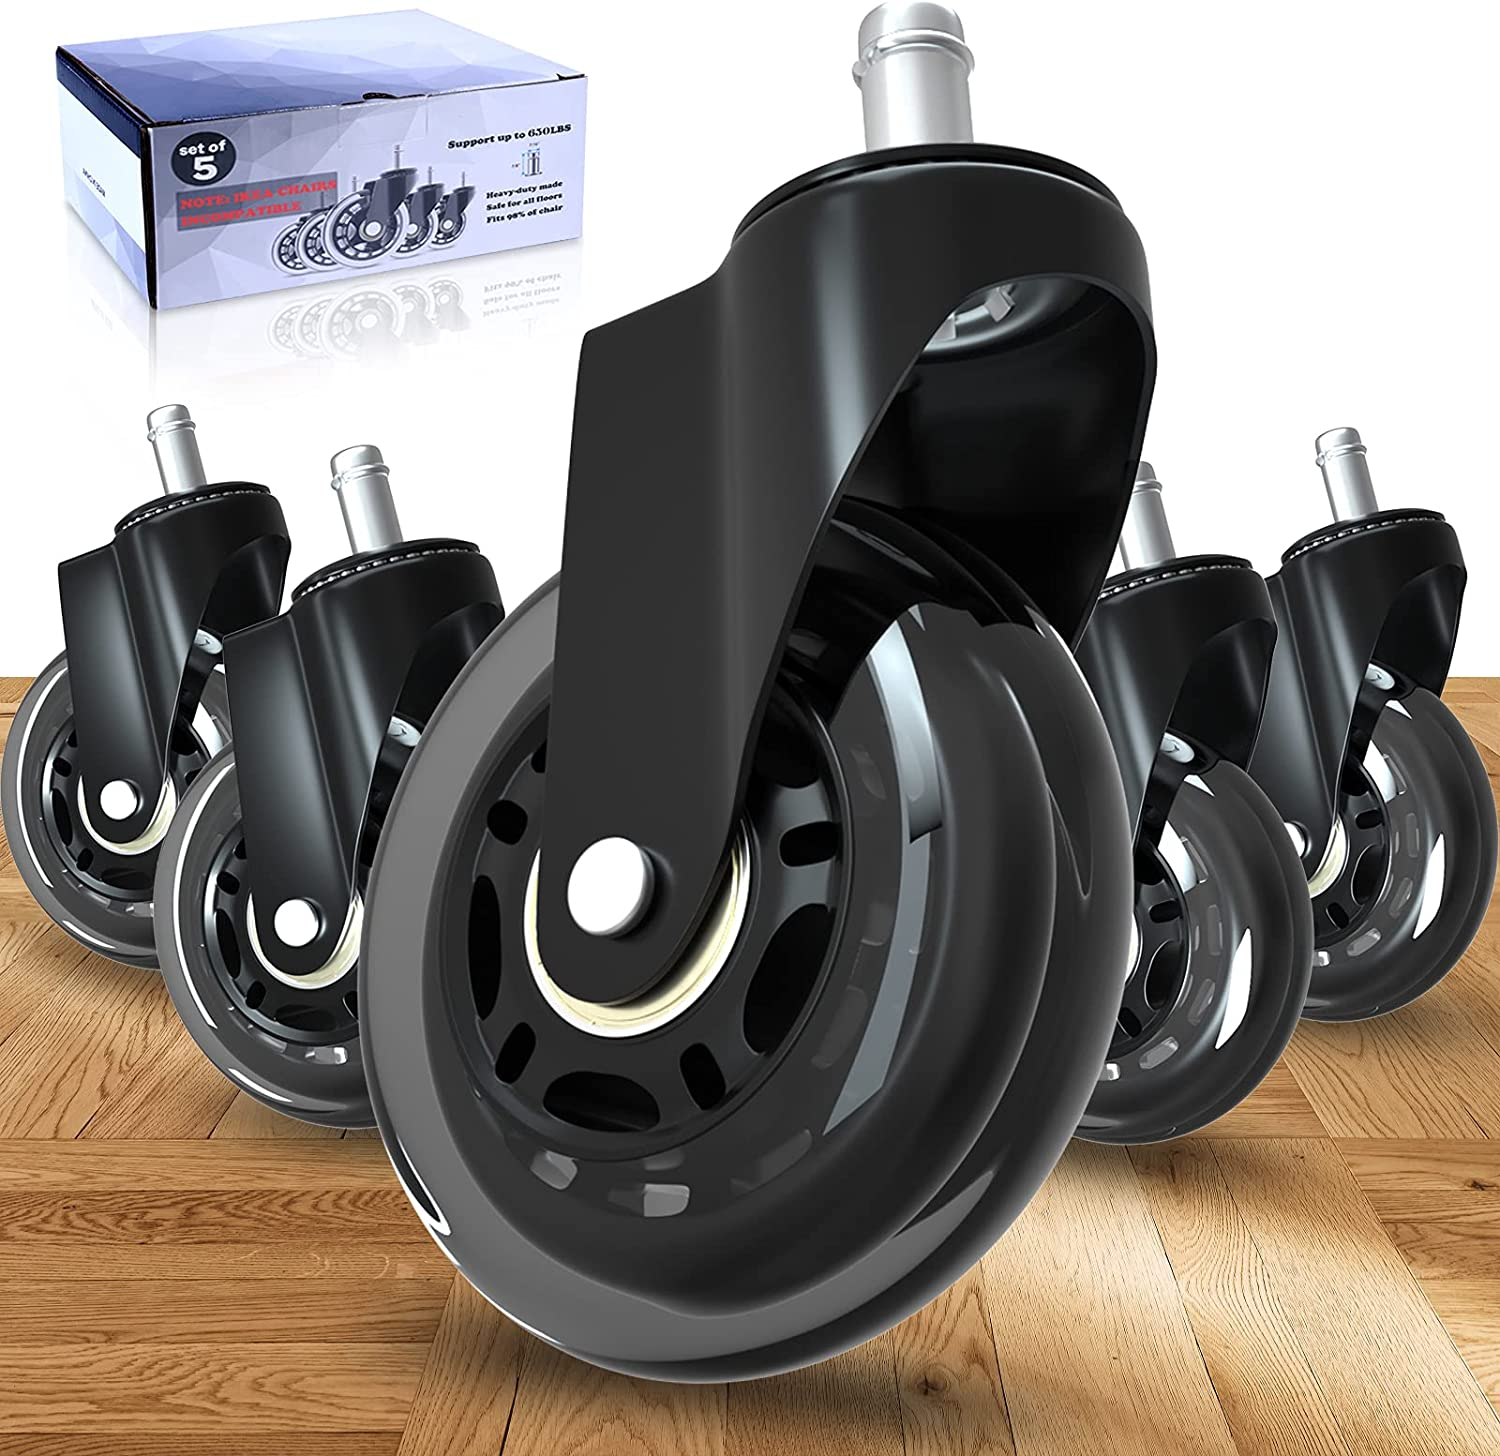 Office Chair Wheels, 3 Inch Rubber Chair Casters Replacement, Heavy-Duty Wheels for Office Desk Chair, Safe Quiet Rolling for All Floors, Hardwood and Carpet, Set of 5 Casters